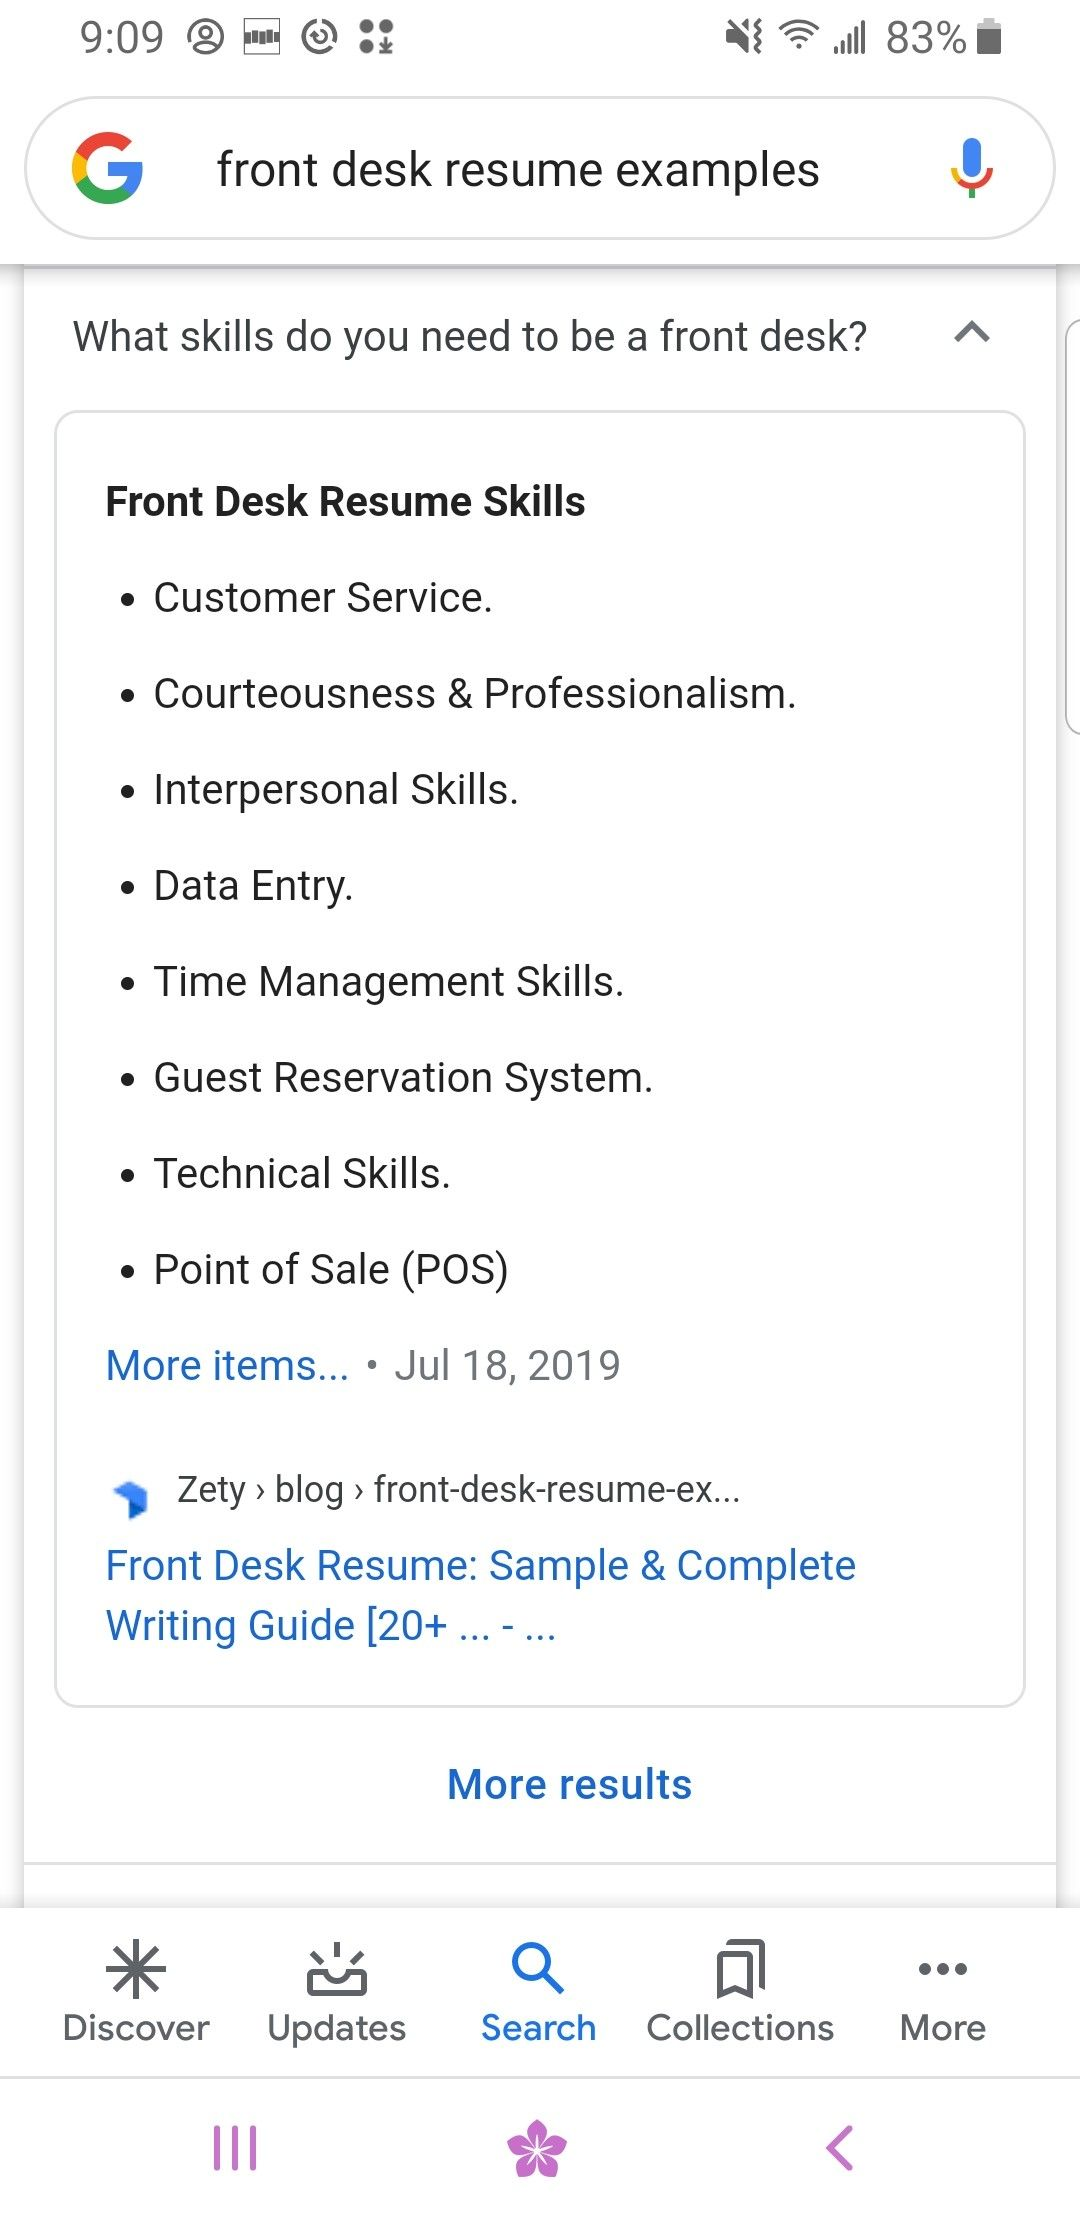 Pin by LB on JOB in 2020 Time management skills, Resume